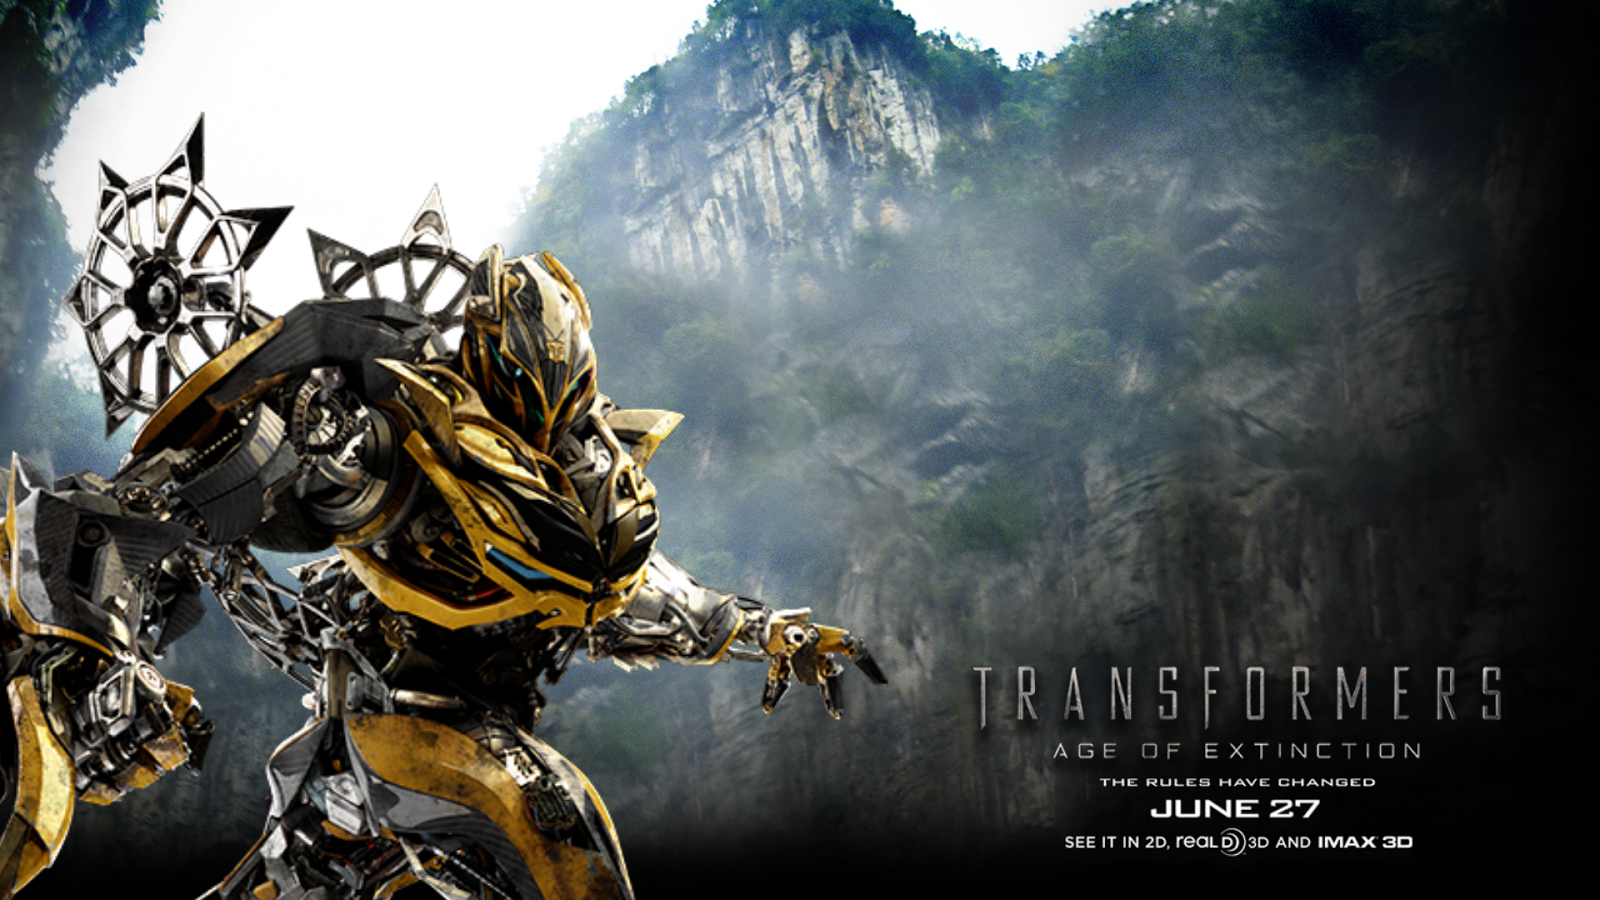 Best transformers 4 wallpaper wallpapers quality - Wallpapers transformers 4 ...